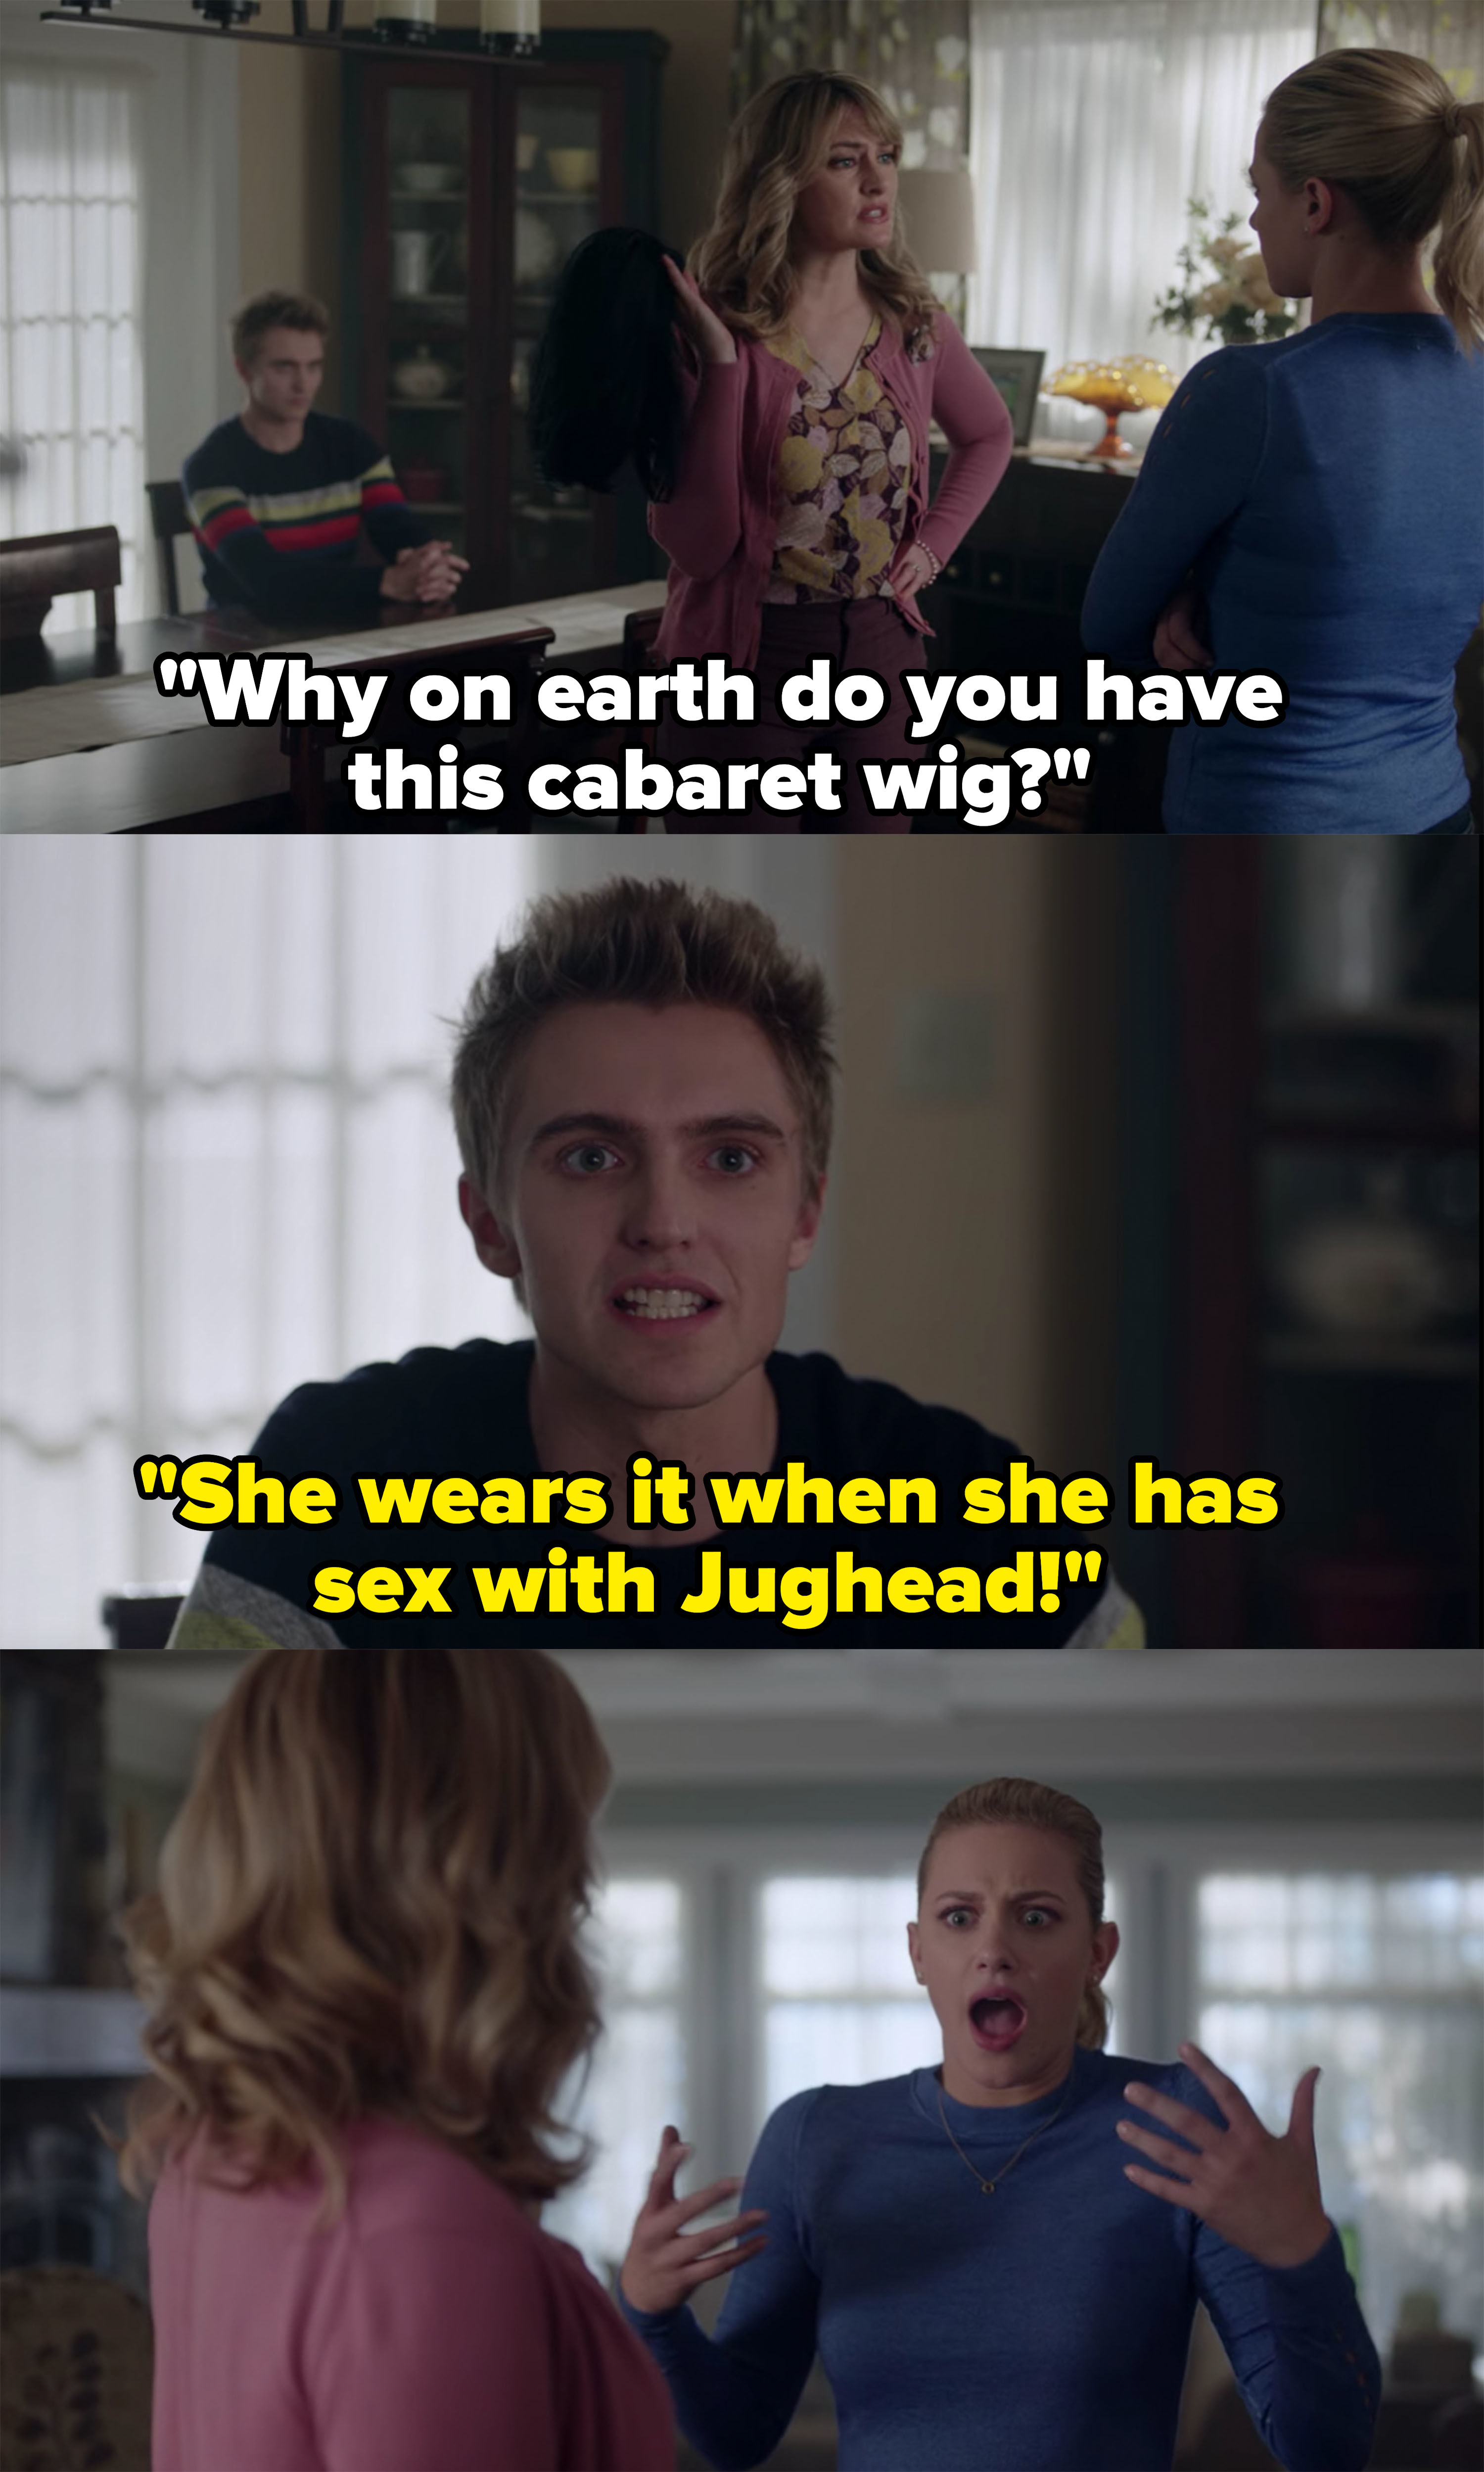 Chic tells Alice Betty uses the wig when she has sex with Jughead